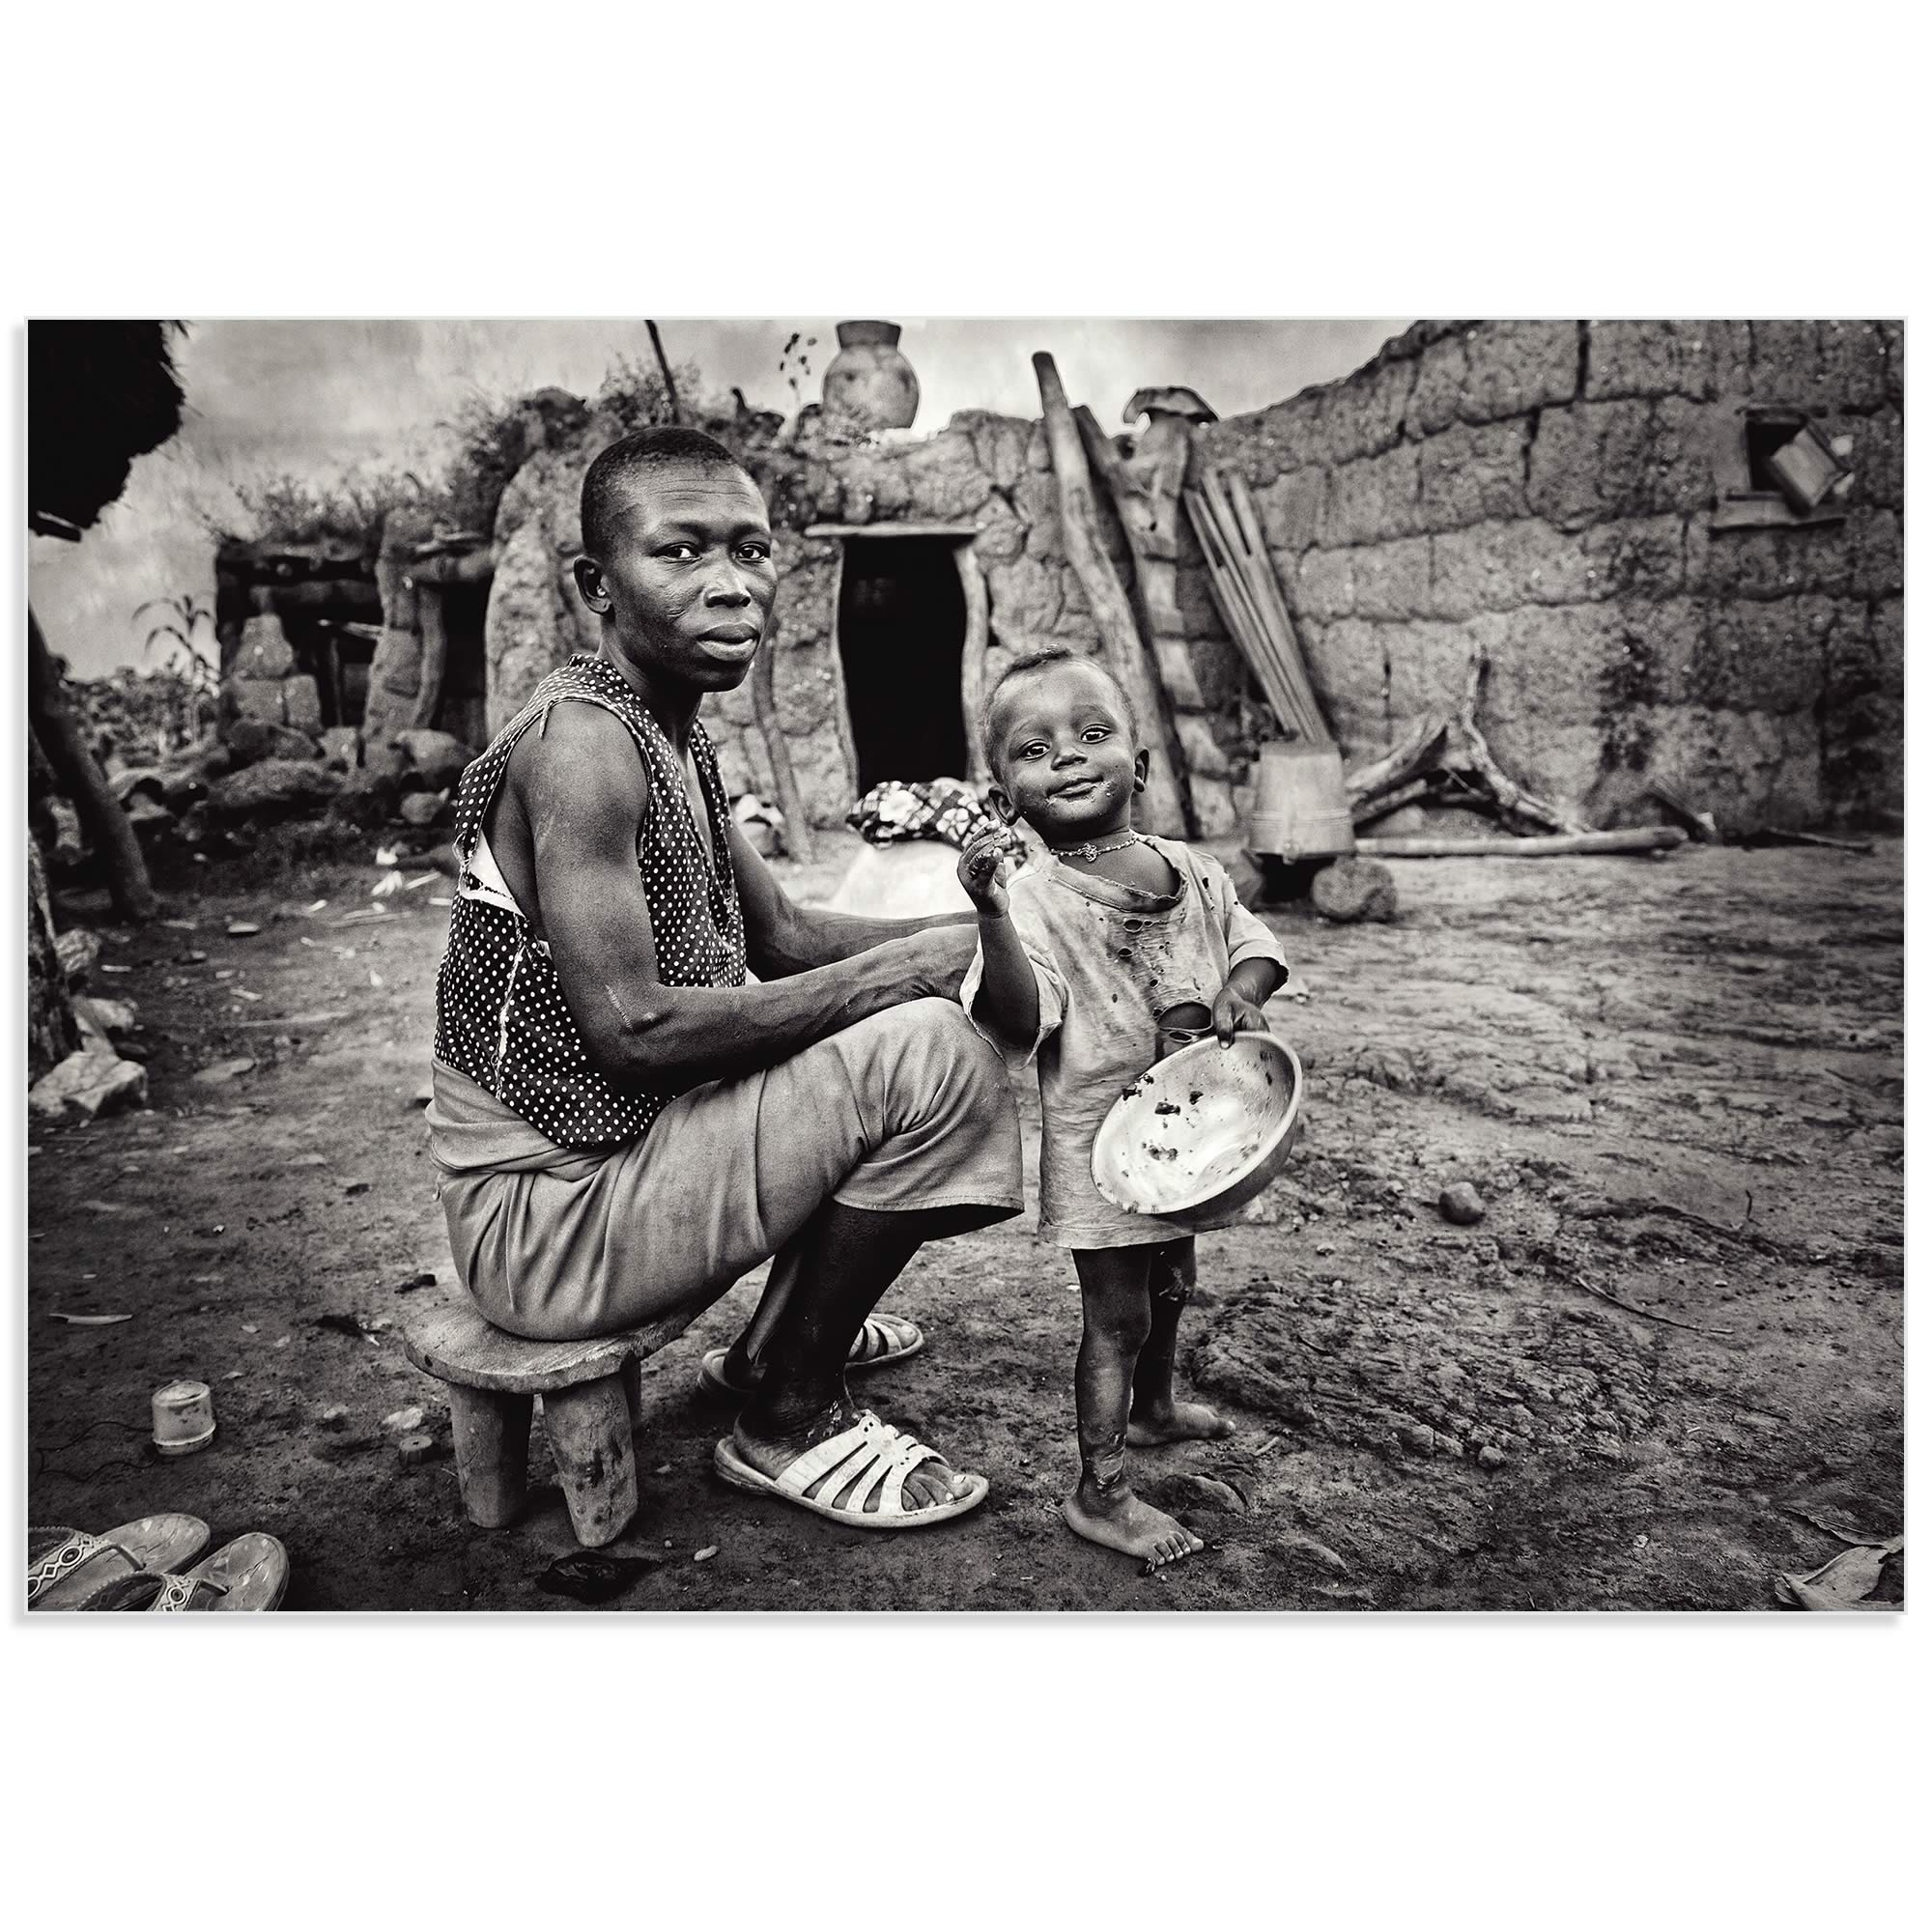 Lobi Village by Manuel Vilches - African Family Art on Metal or Acrylic - Alternate View 2